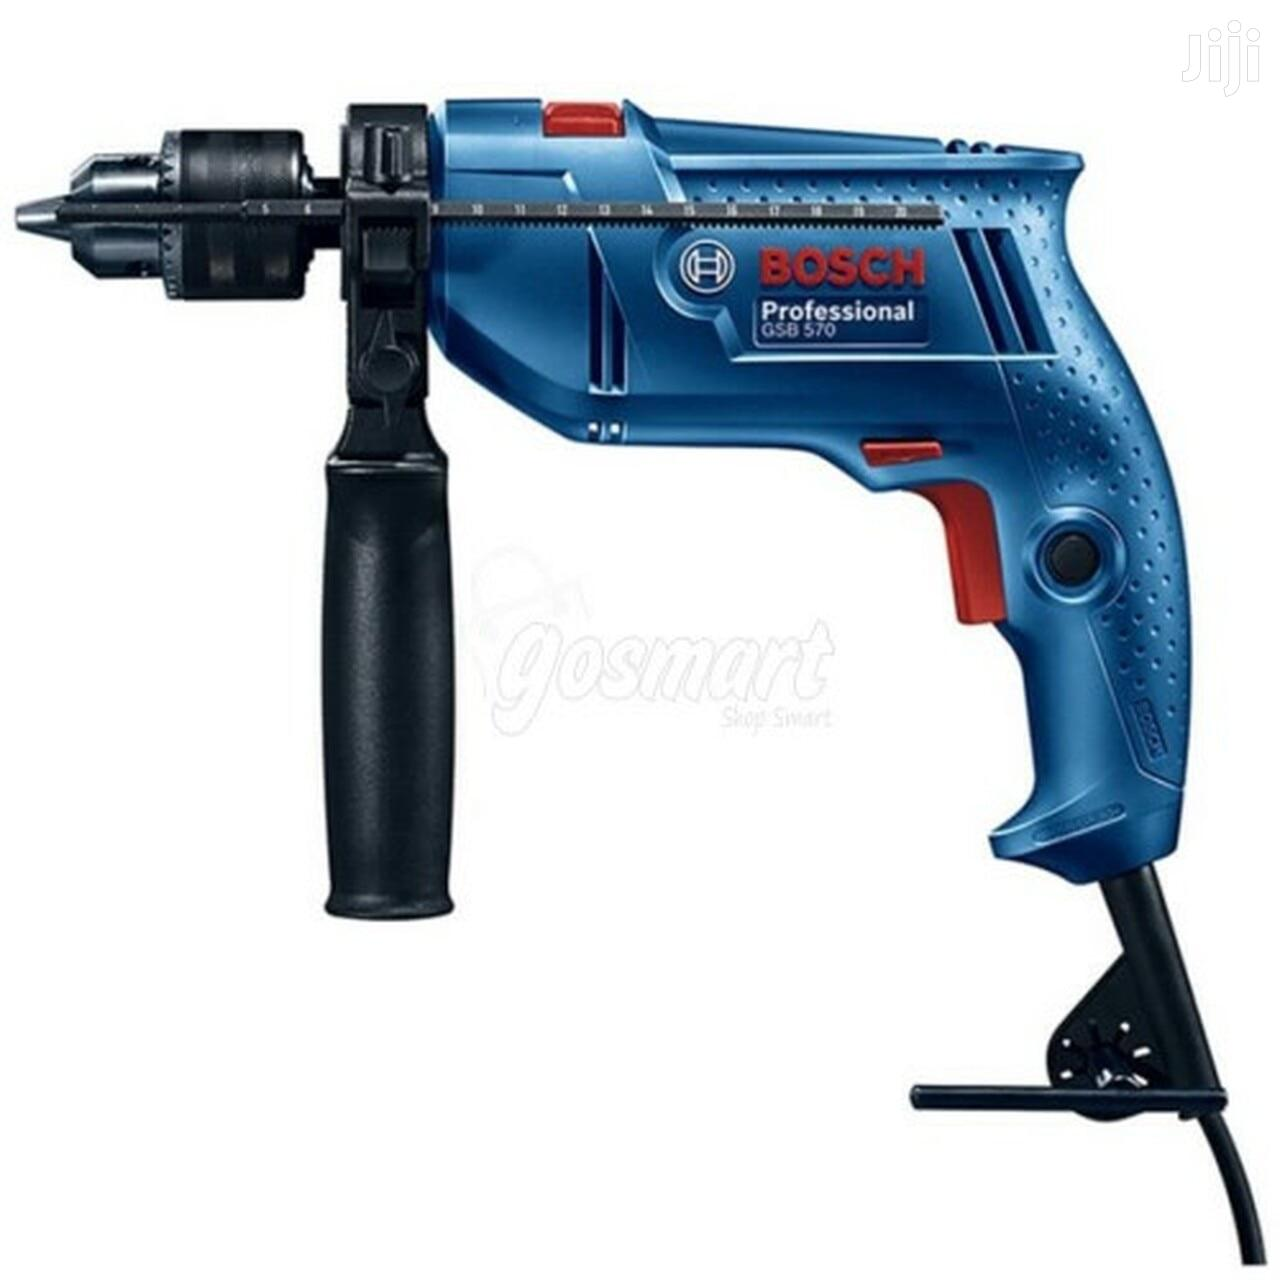 German Bosch Electric Drilling And Screwed.